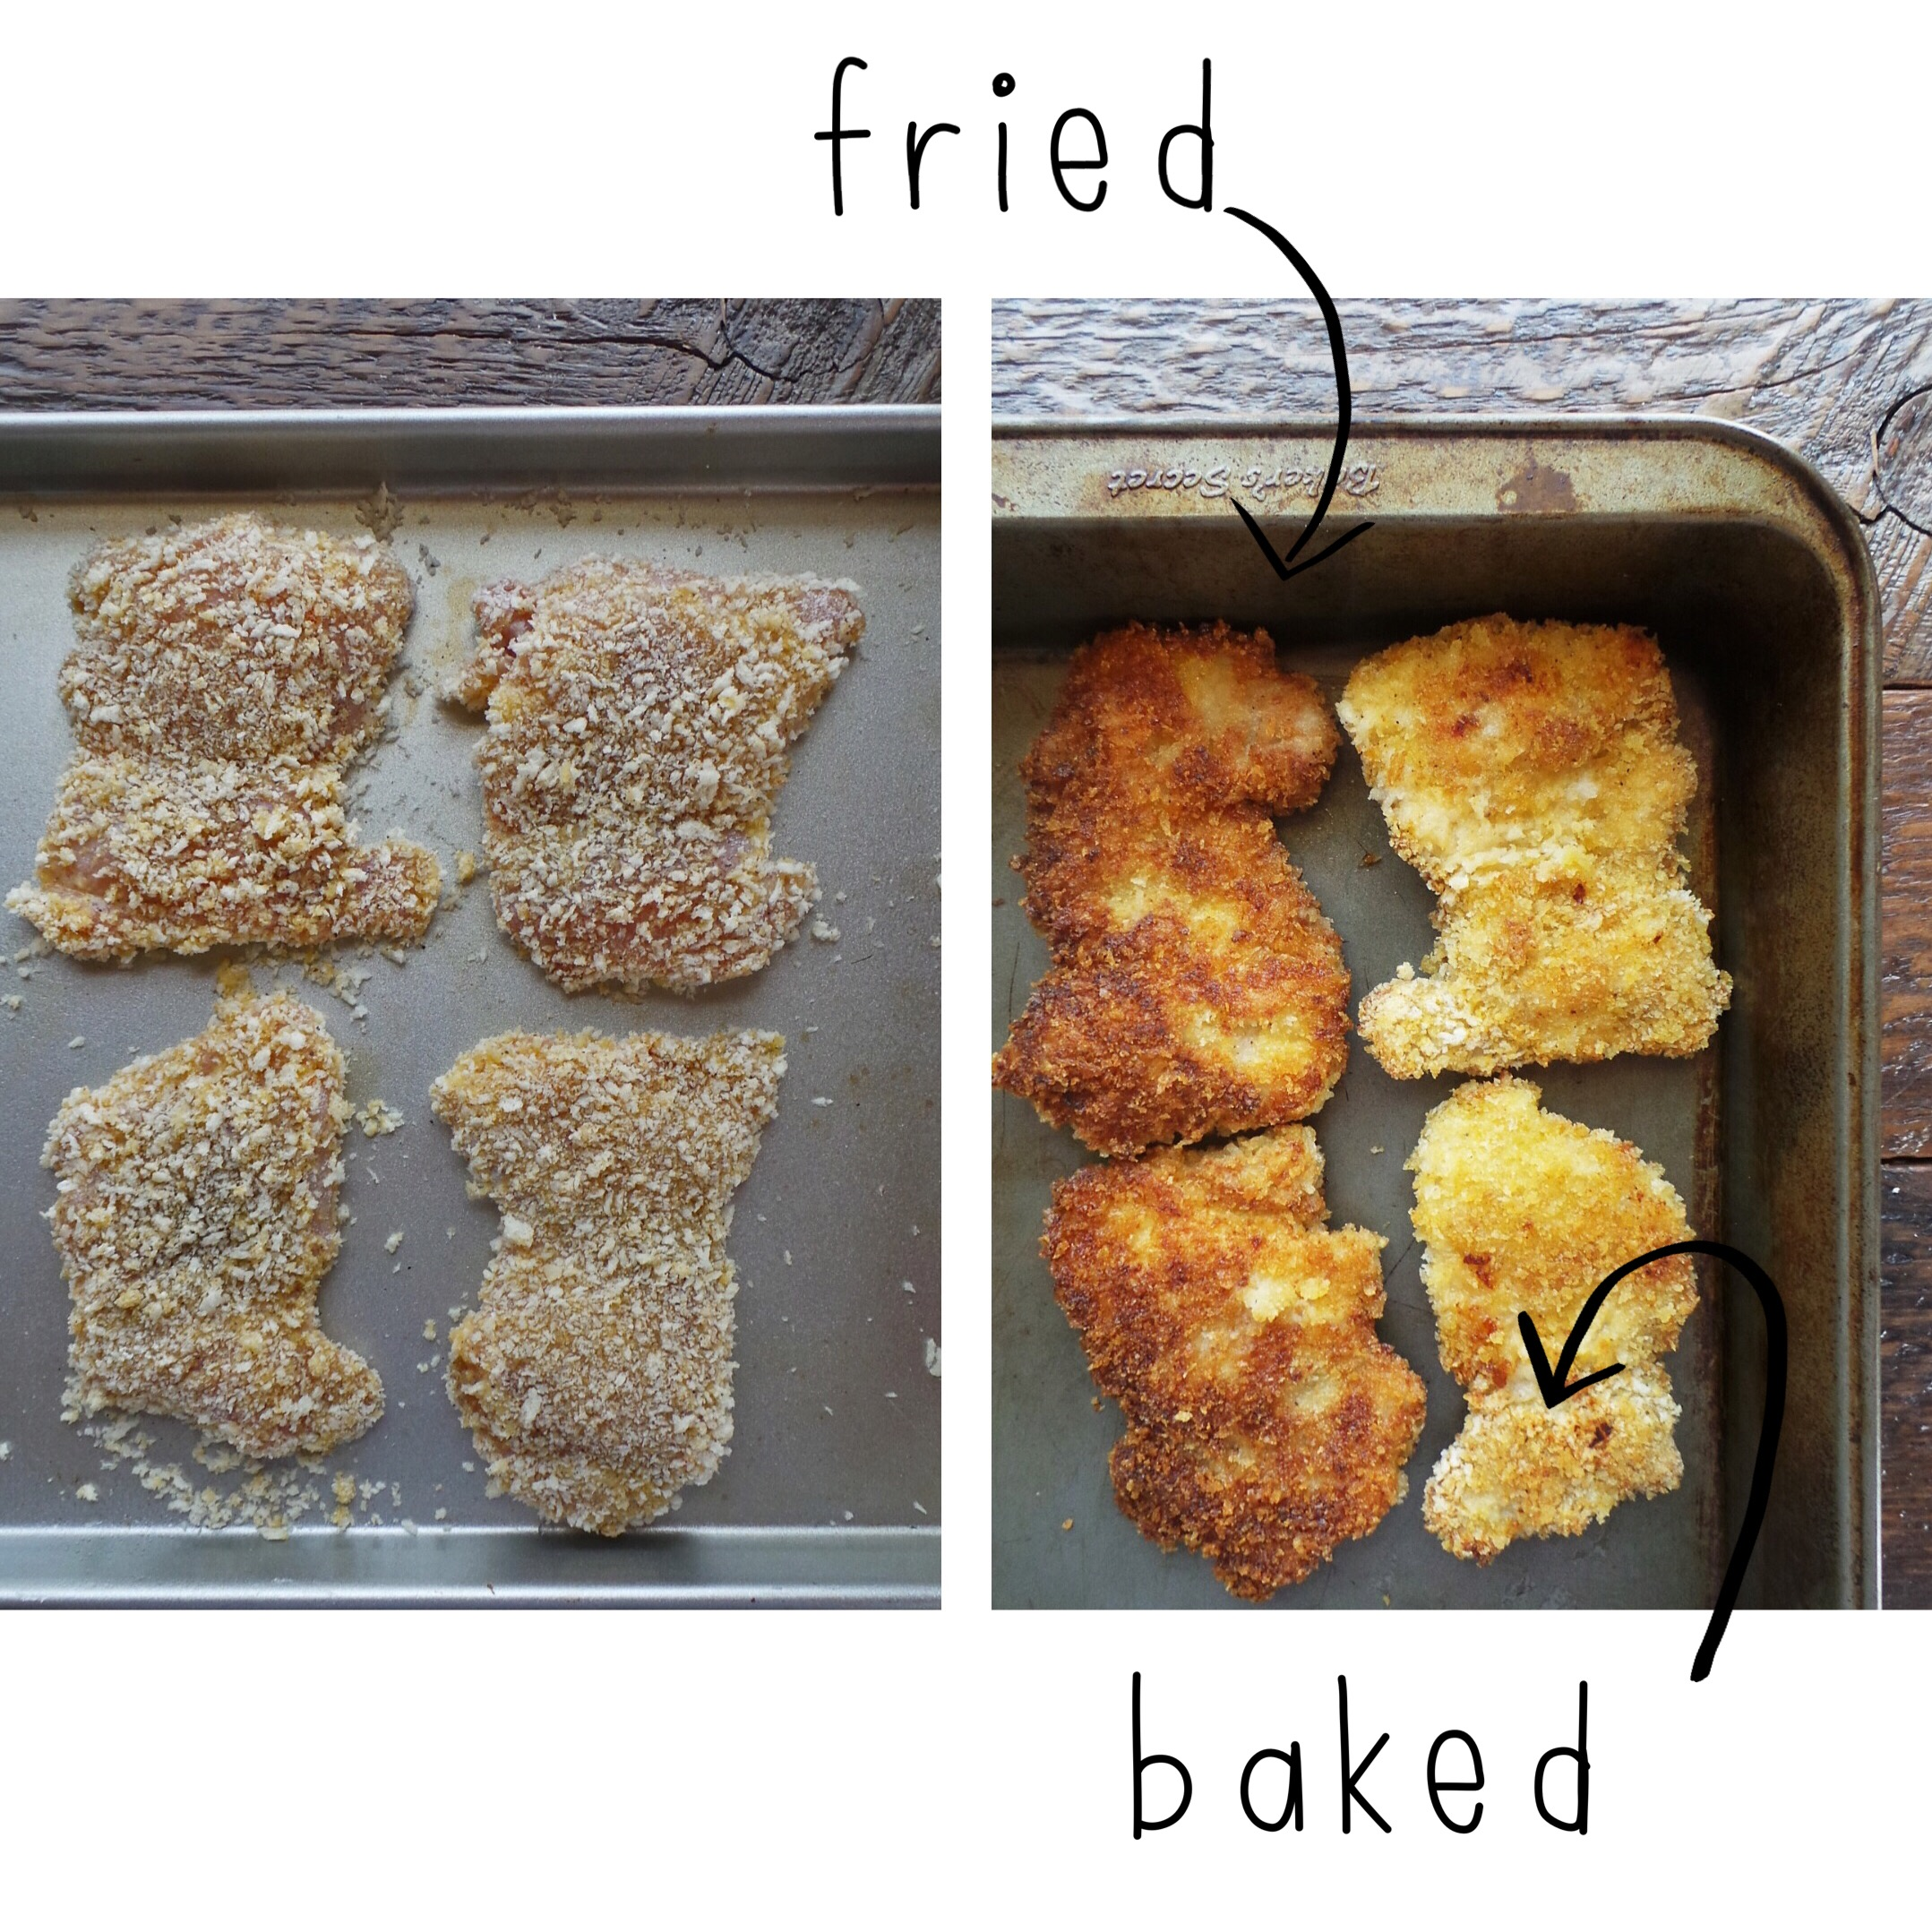 Fried vs. Baked